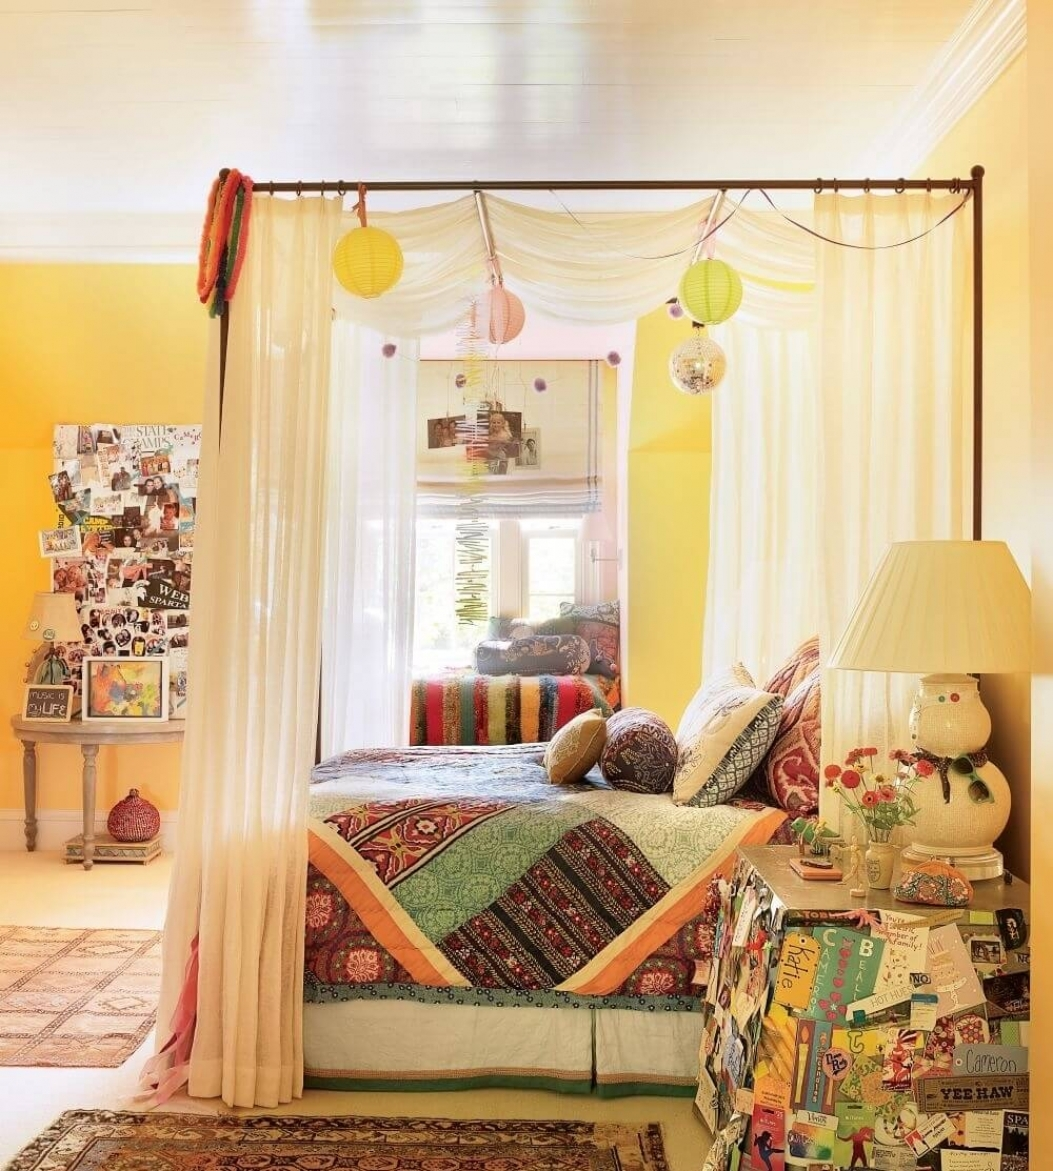 Bohemian Bedroom Inspiration: Four Poster Beds With Boho